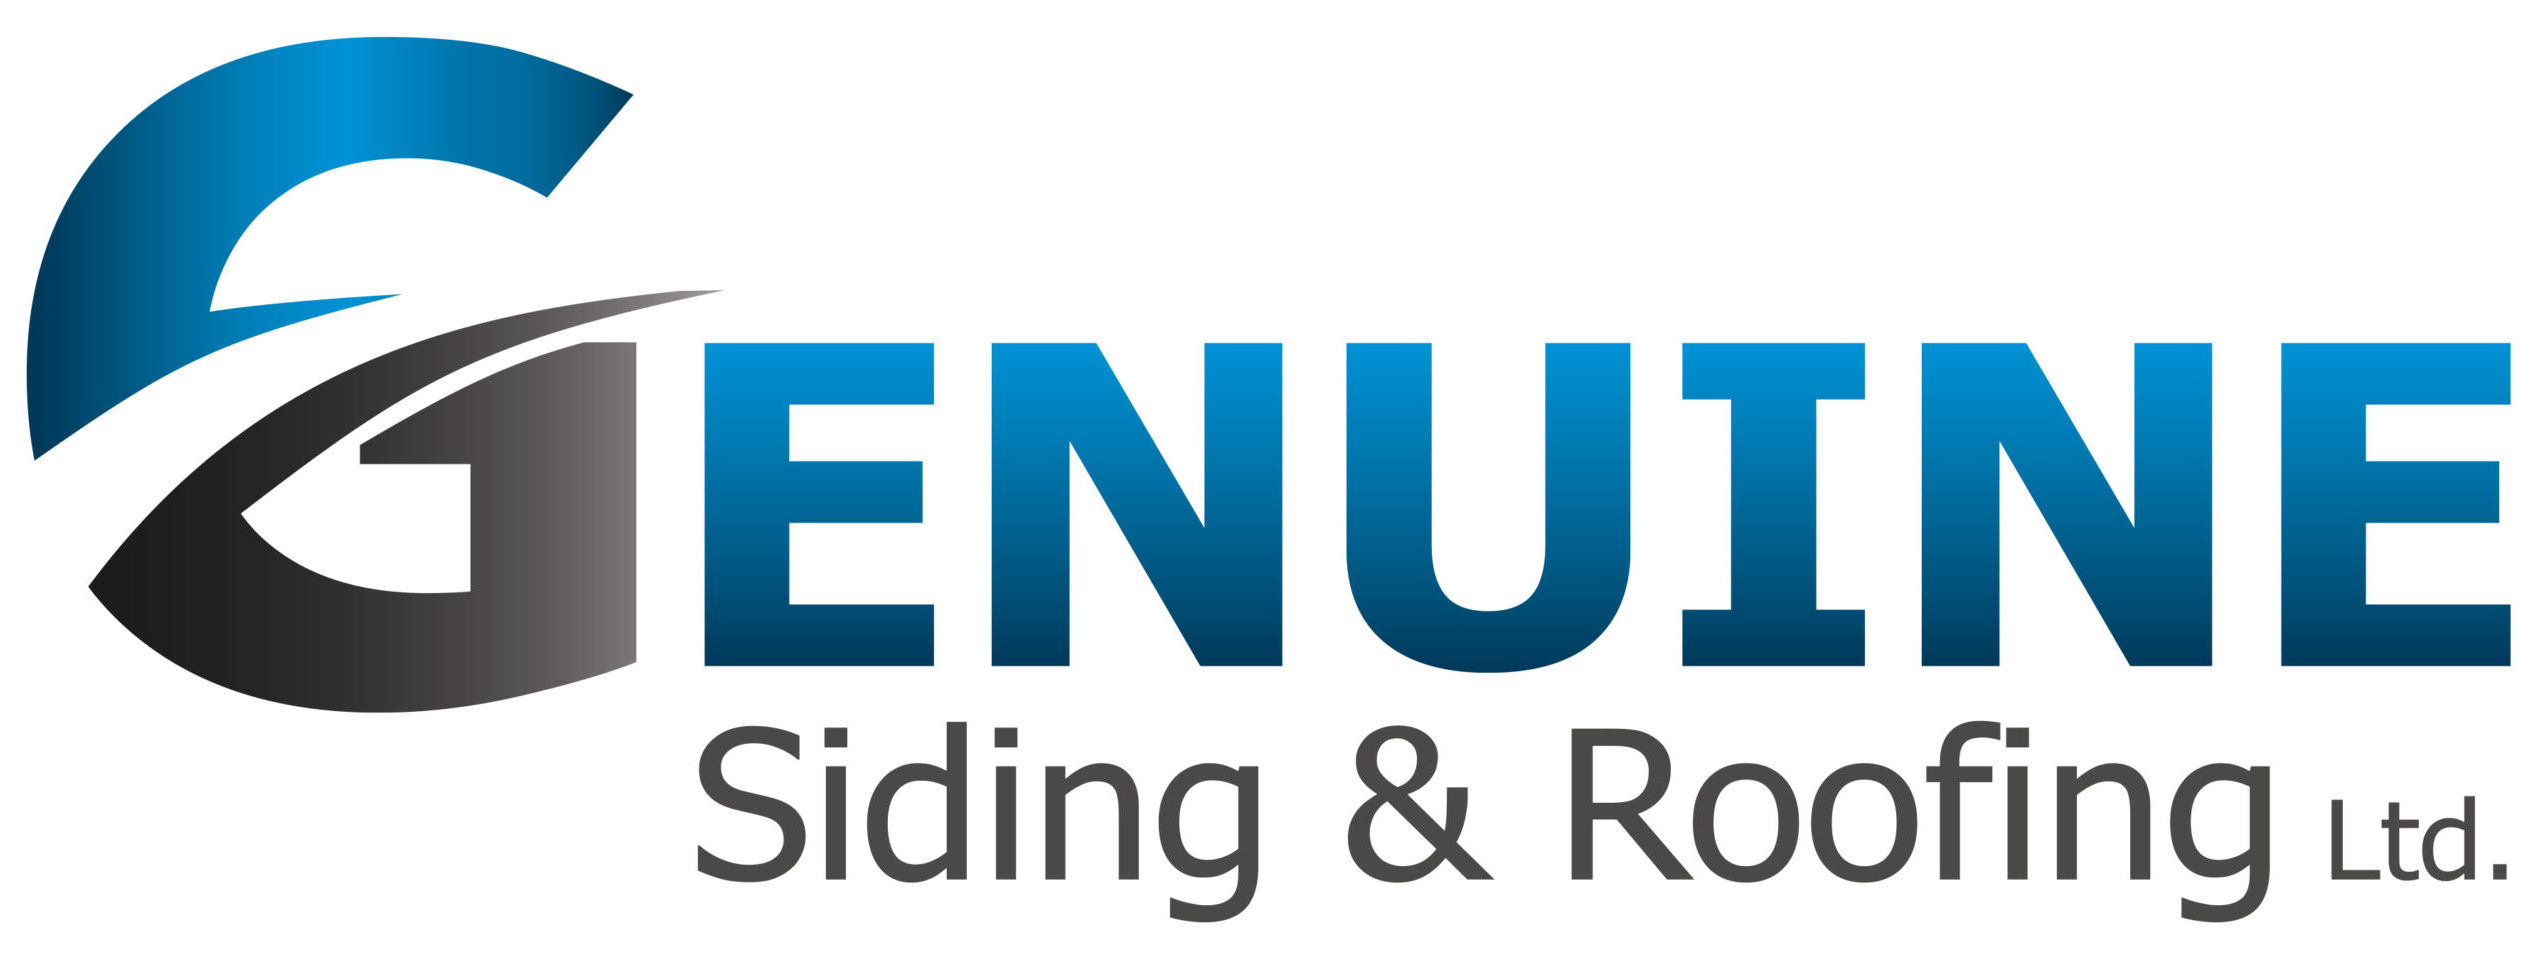 Genuine Siding and Roofing